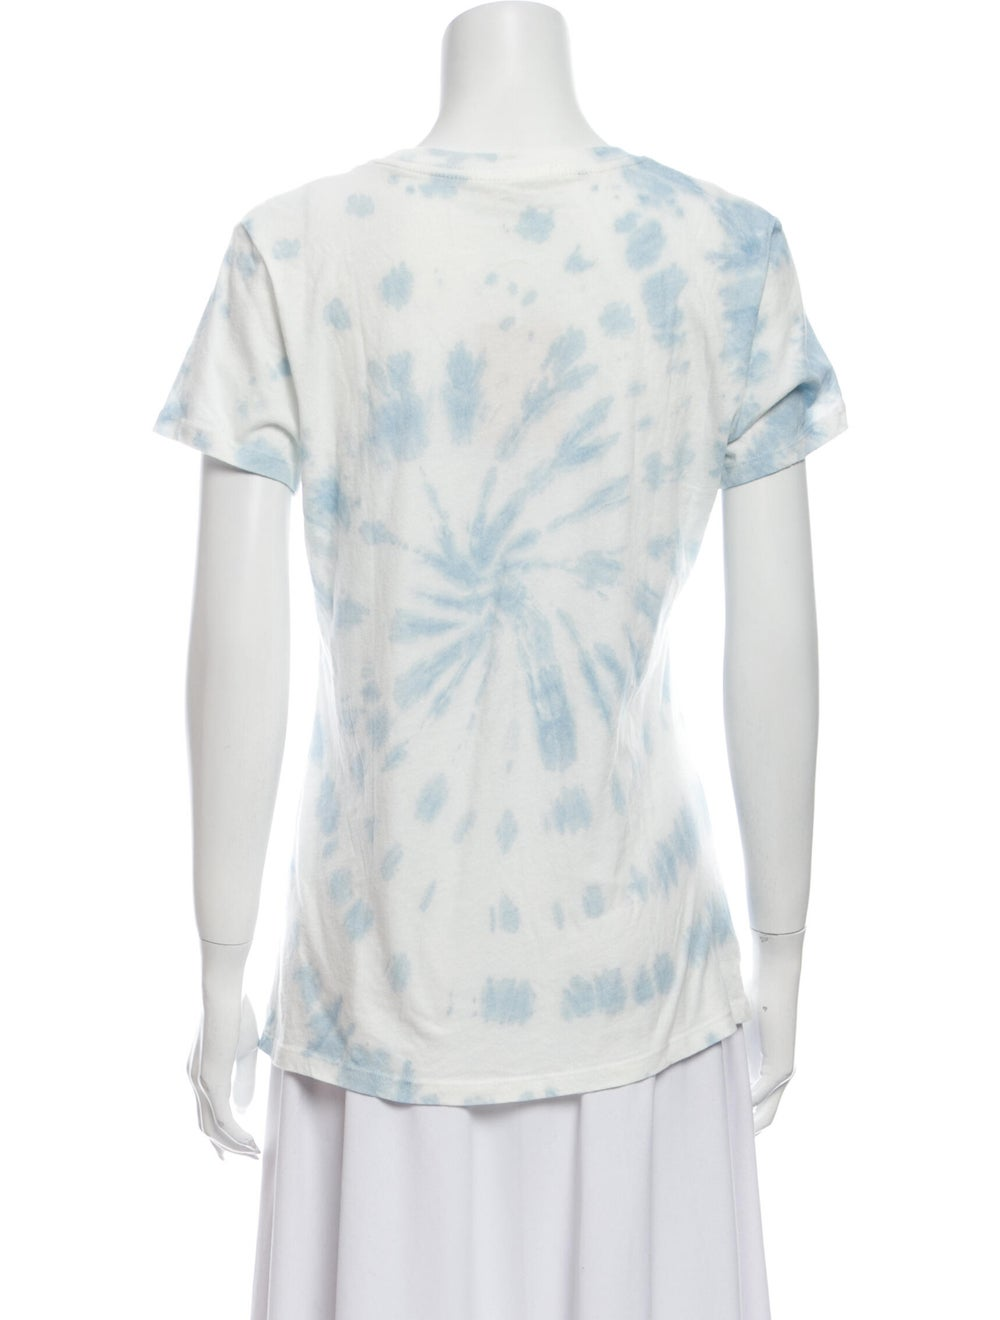 Reformation Tie-Dye Print Scoop Neck T-Shirt Blue - image 3